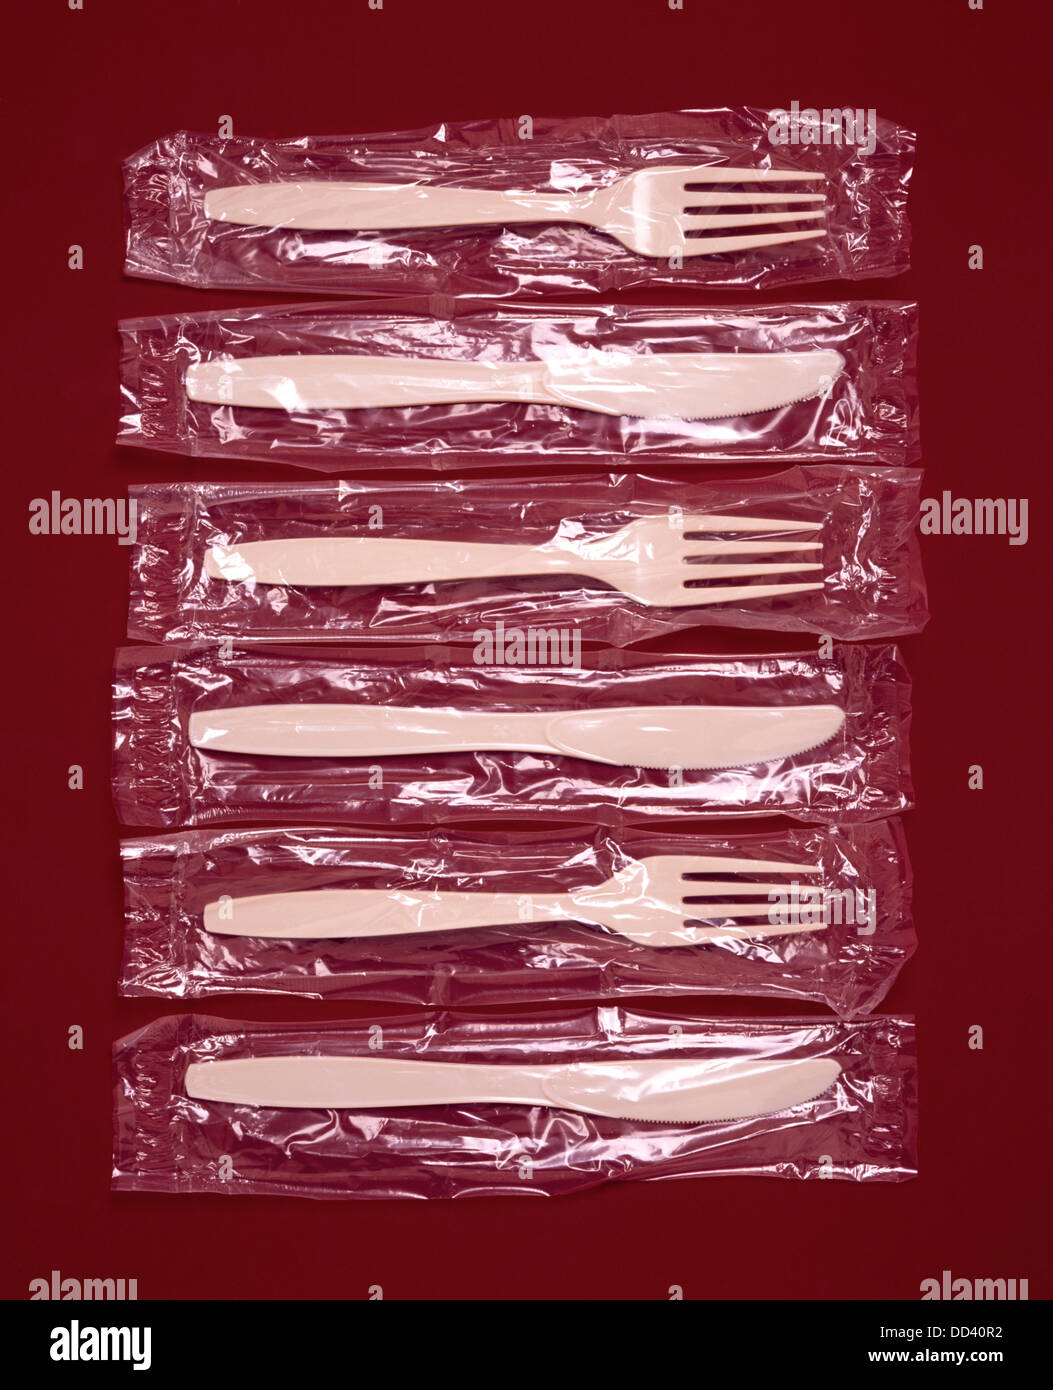 Plastic forks and knives in plastic bags - Stock Image